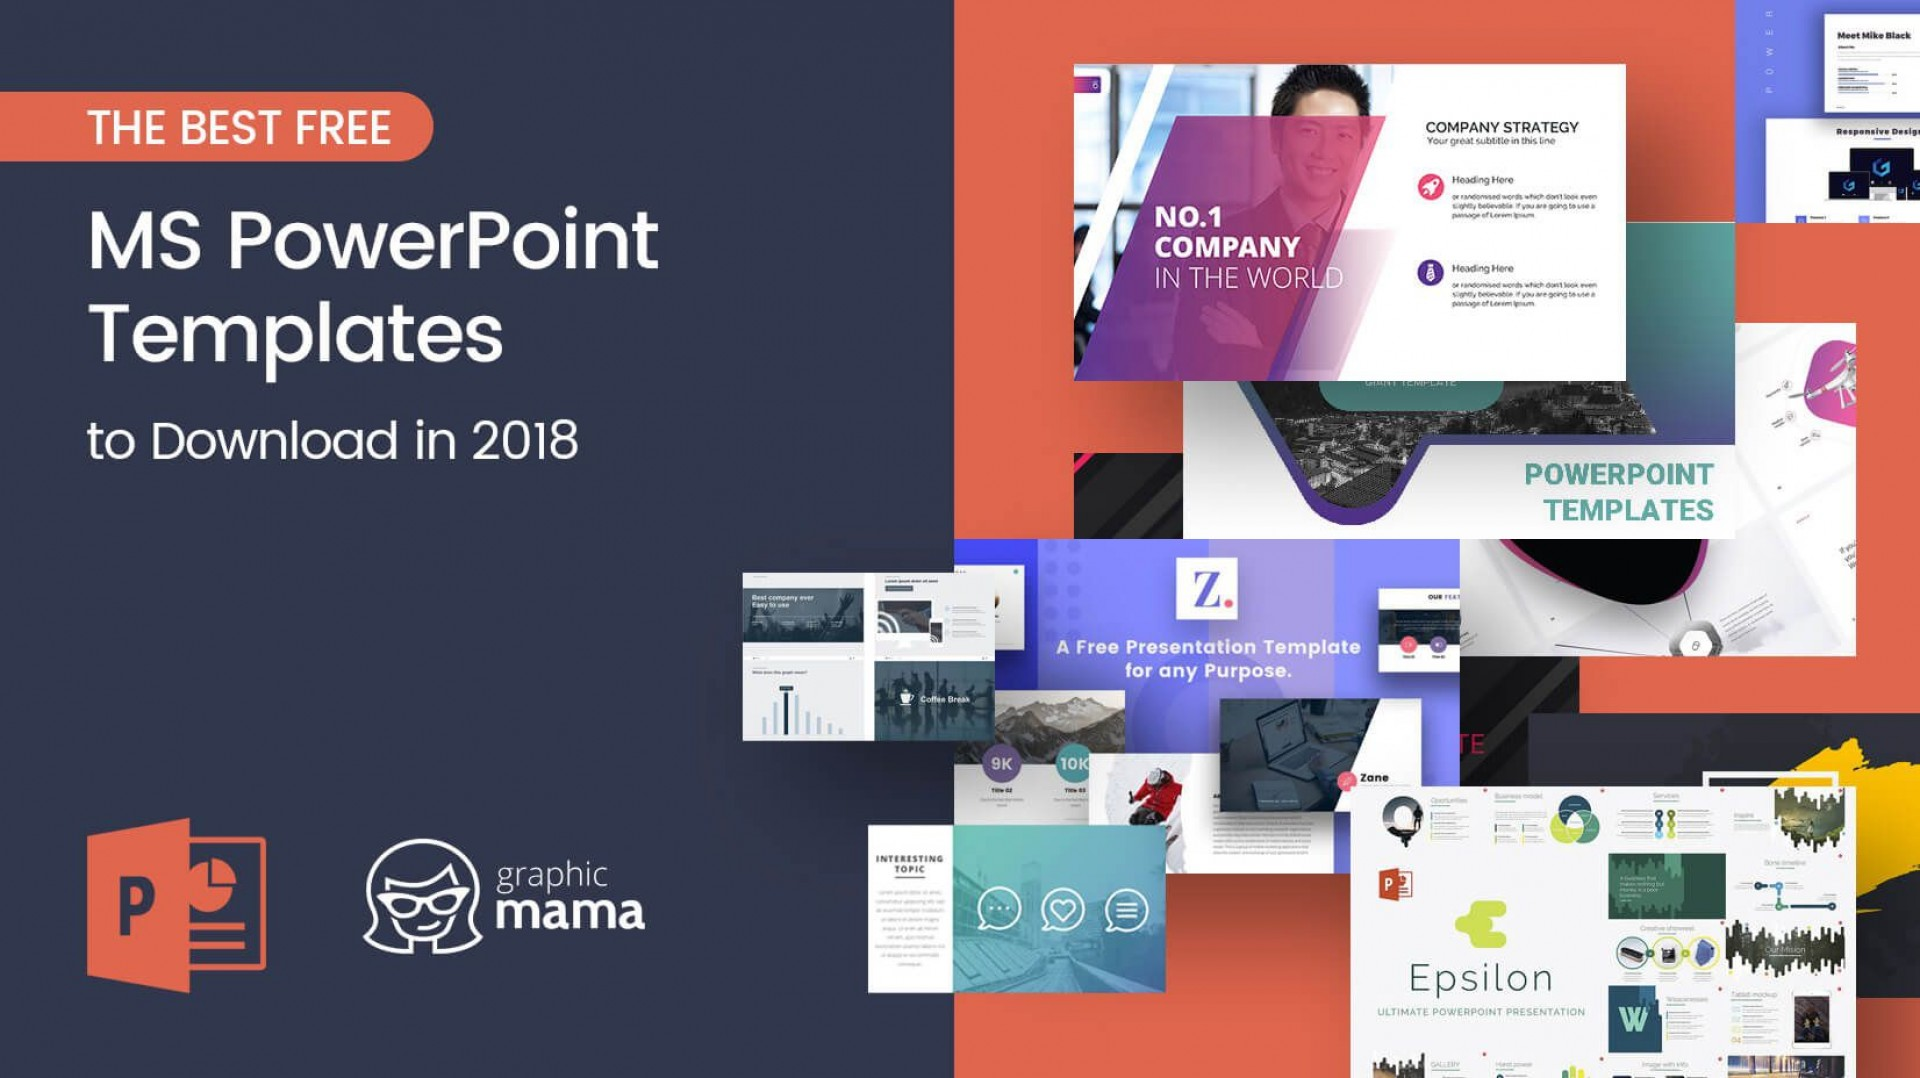 008 Excellent Best Ppt Template Free Download Sample  2019 Microsoft Powerpoint1920